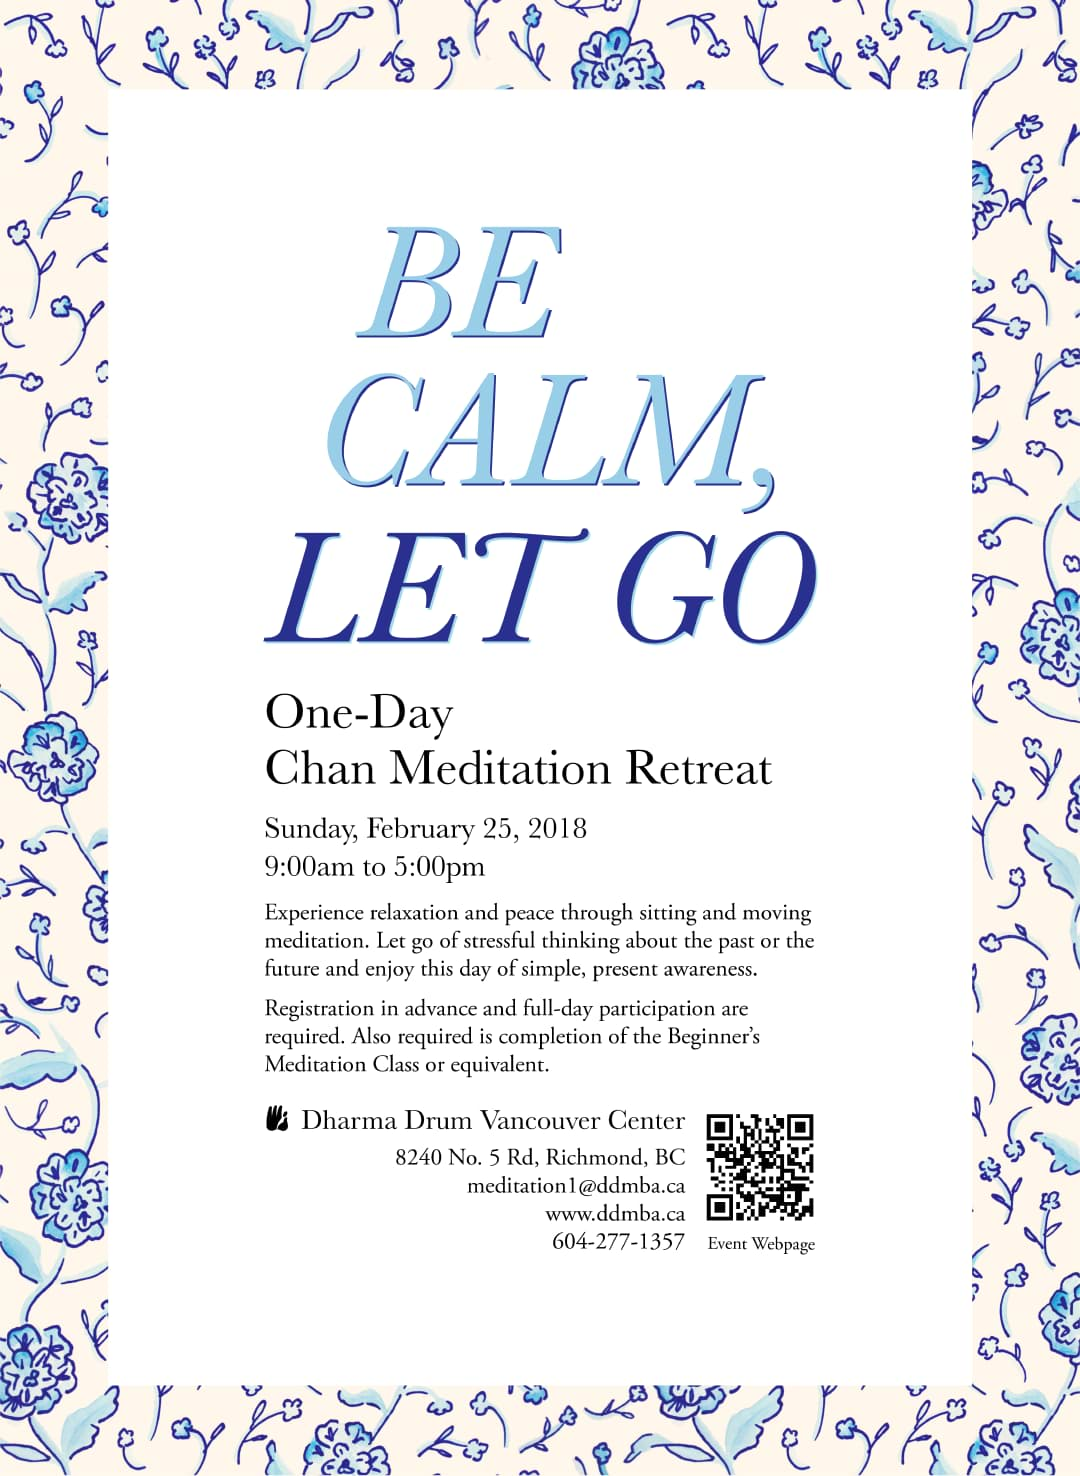 Meditation retreat poster